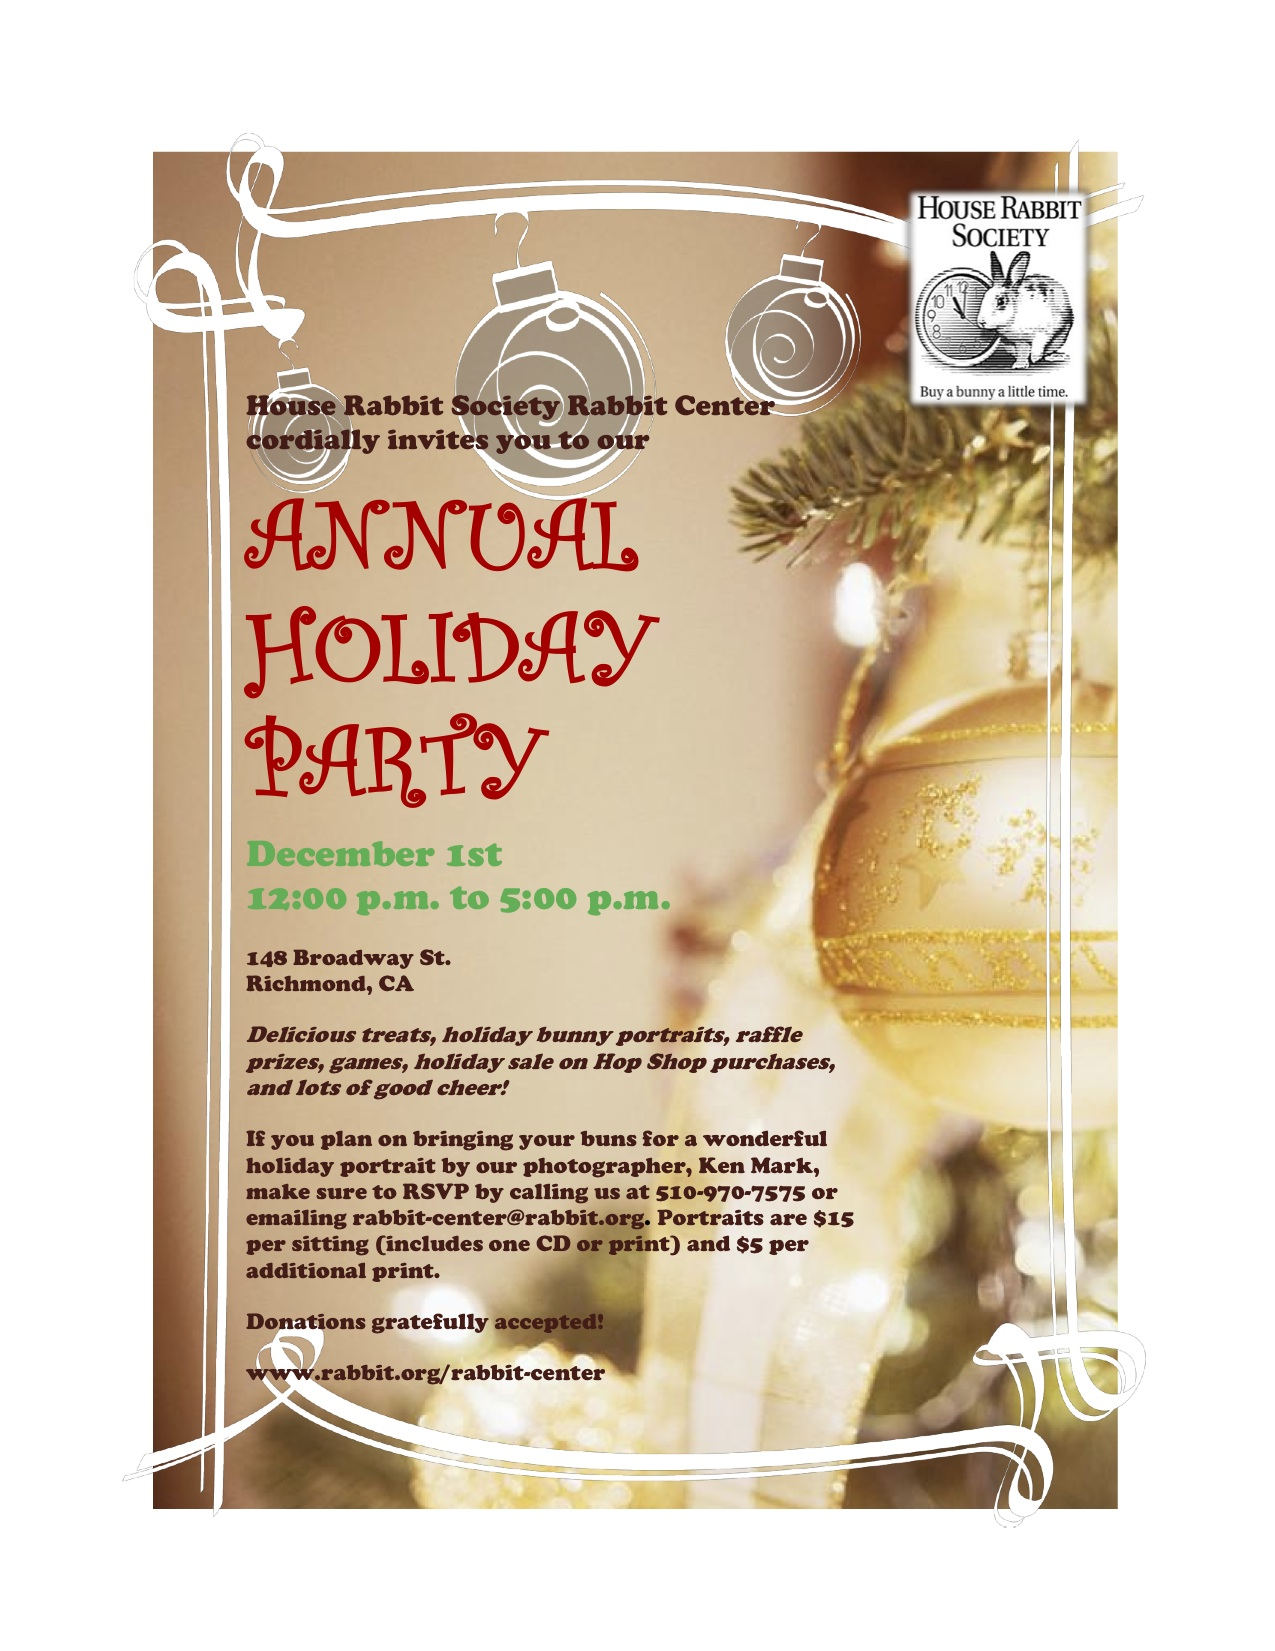 Work Holiday Party Invitations. Free Christmas Party Invitation ...